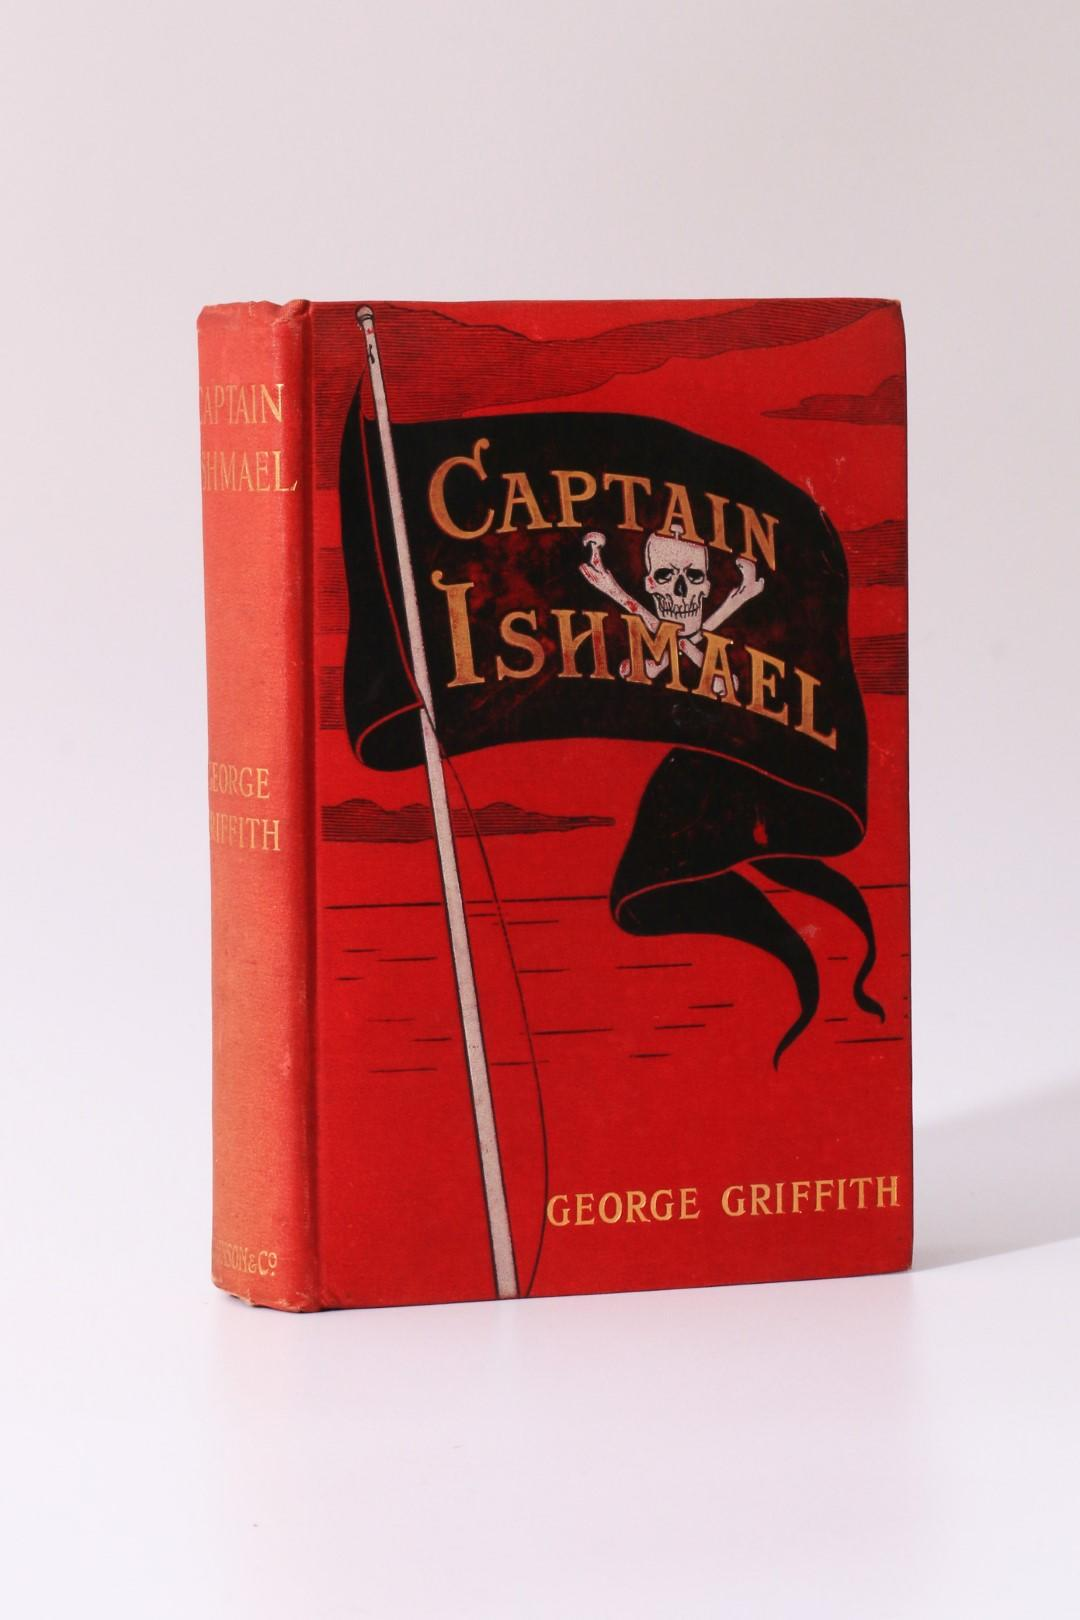 George Griffith - Captain Ishmael - Hutchinson, 1901, First Edition.